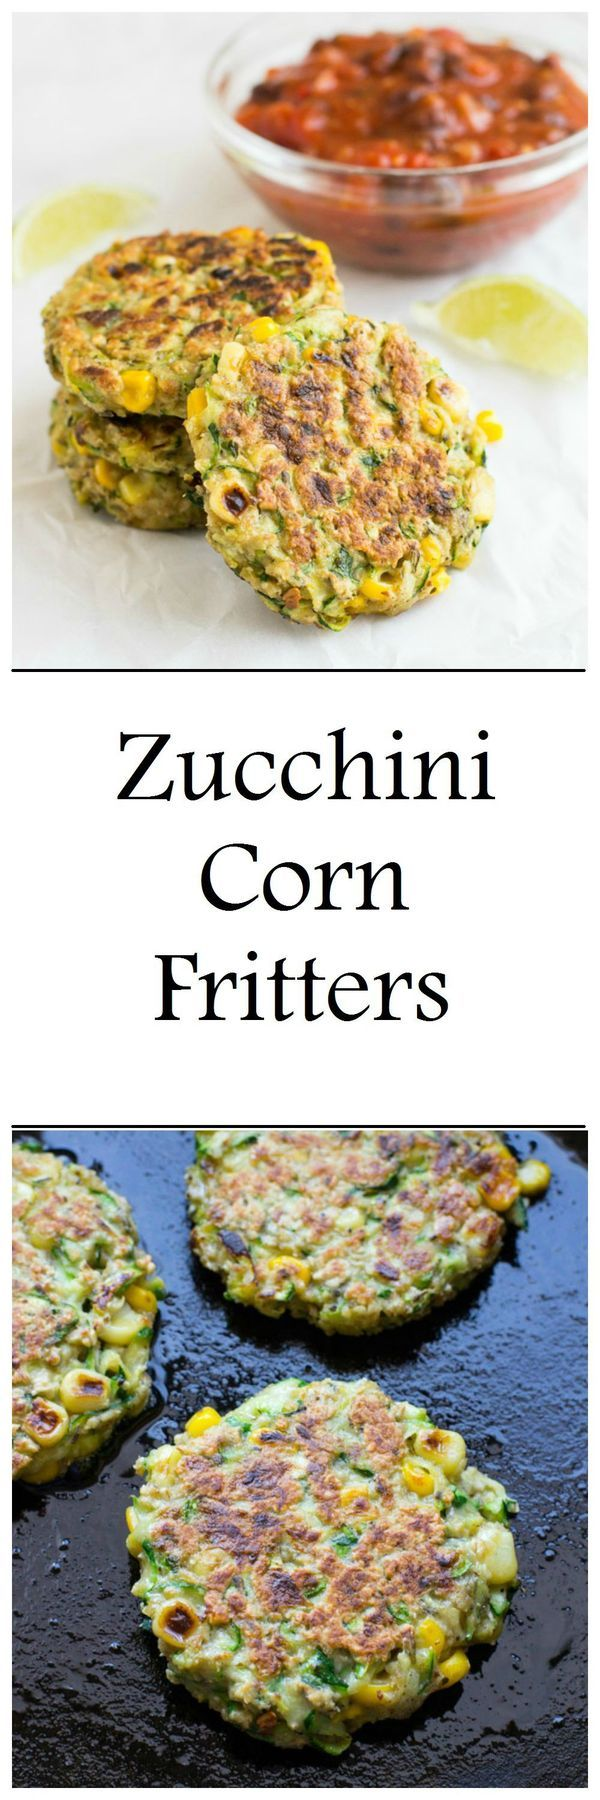 ... Corn Fritters on Pinterest | Fritters, Easy Corn Fritters and Corn